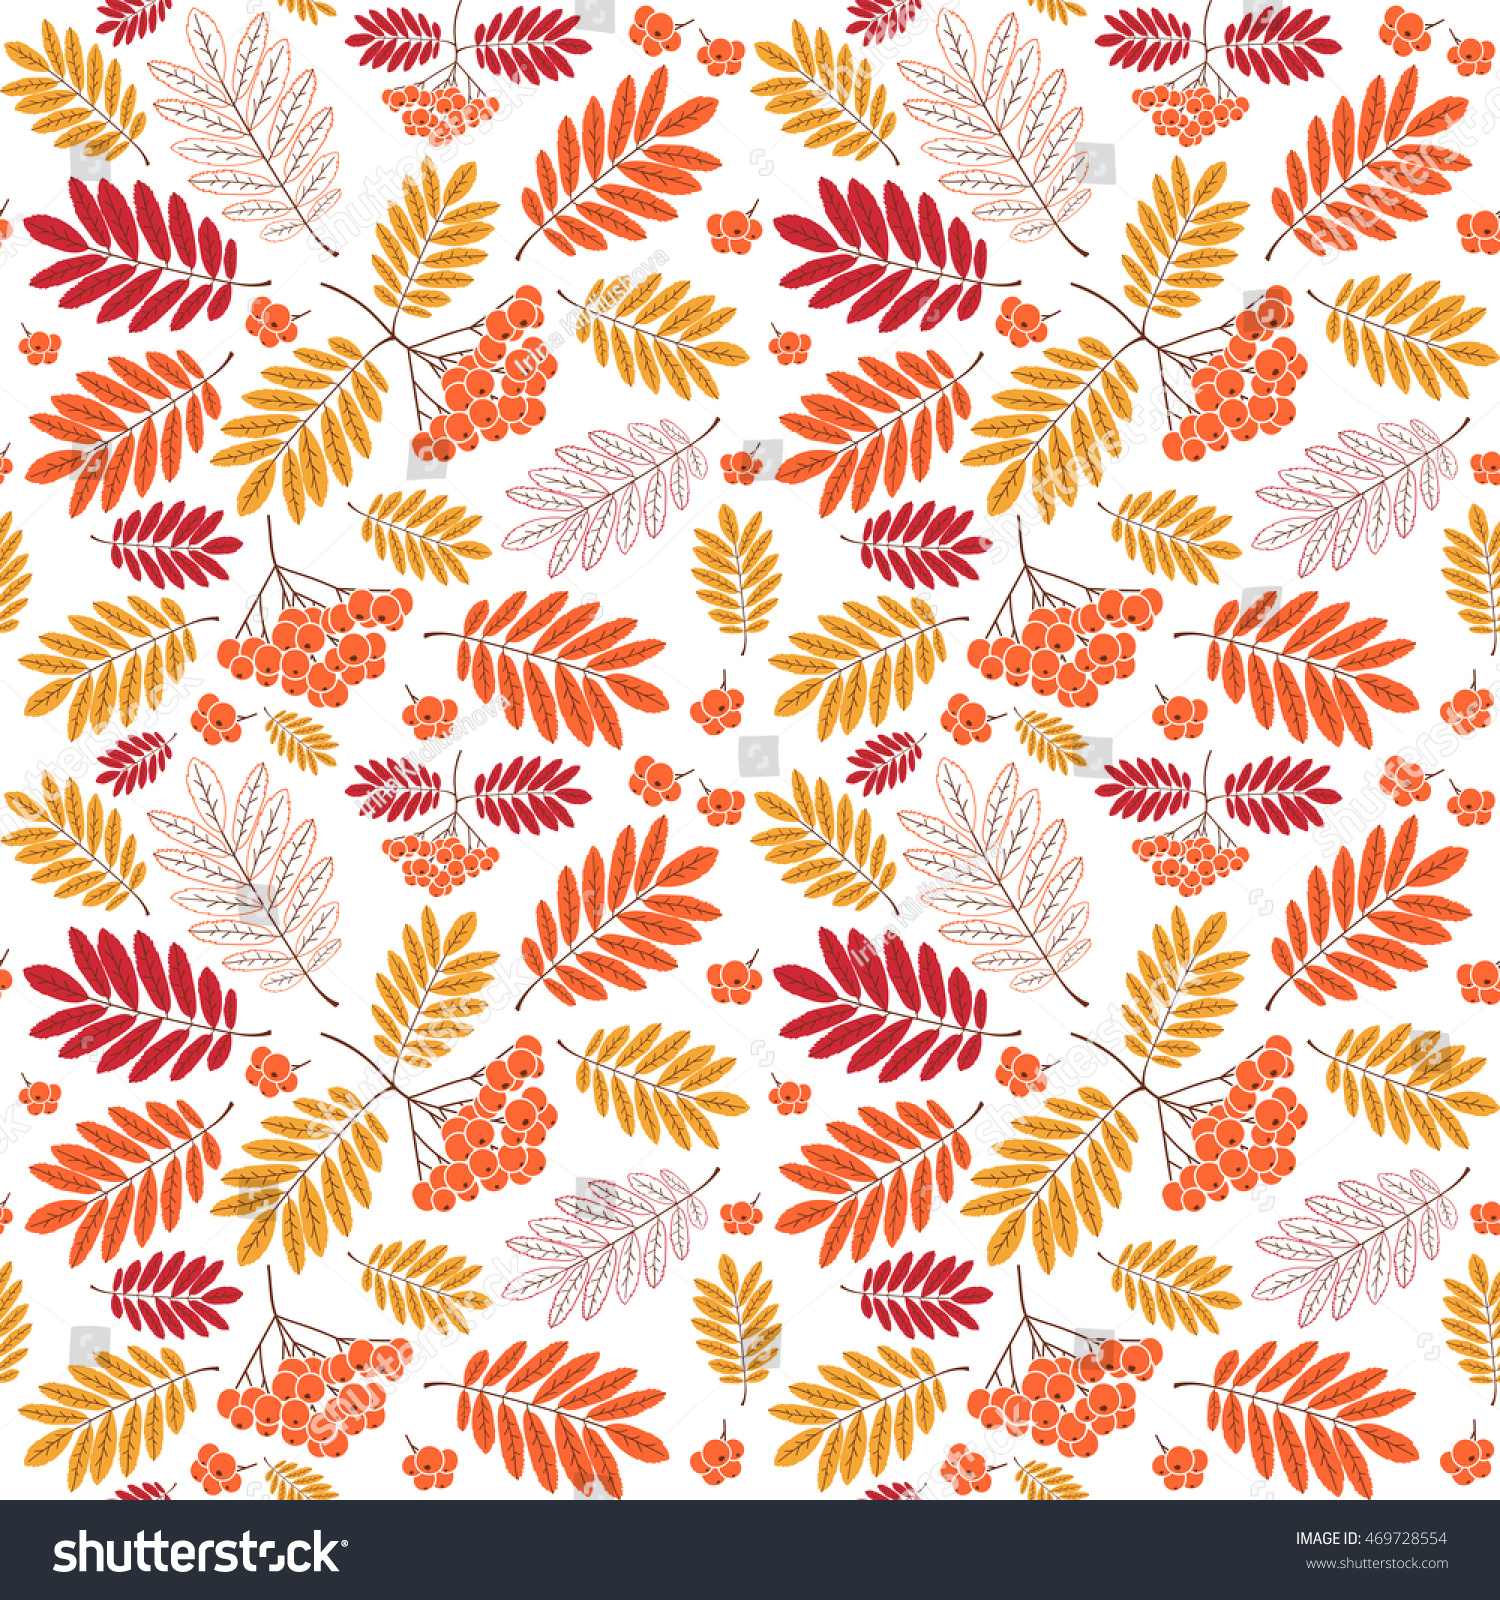 red leaves wallpaper pattern - photo #42